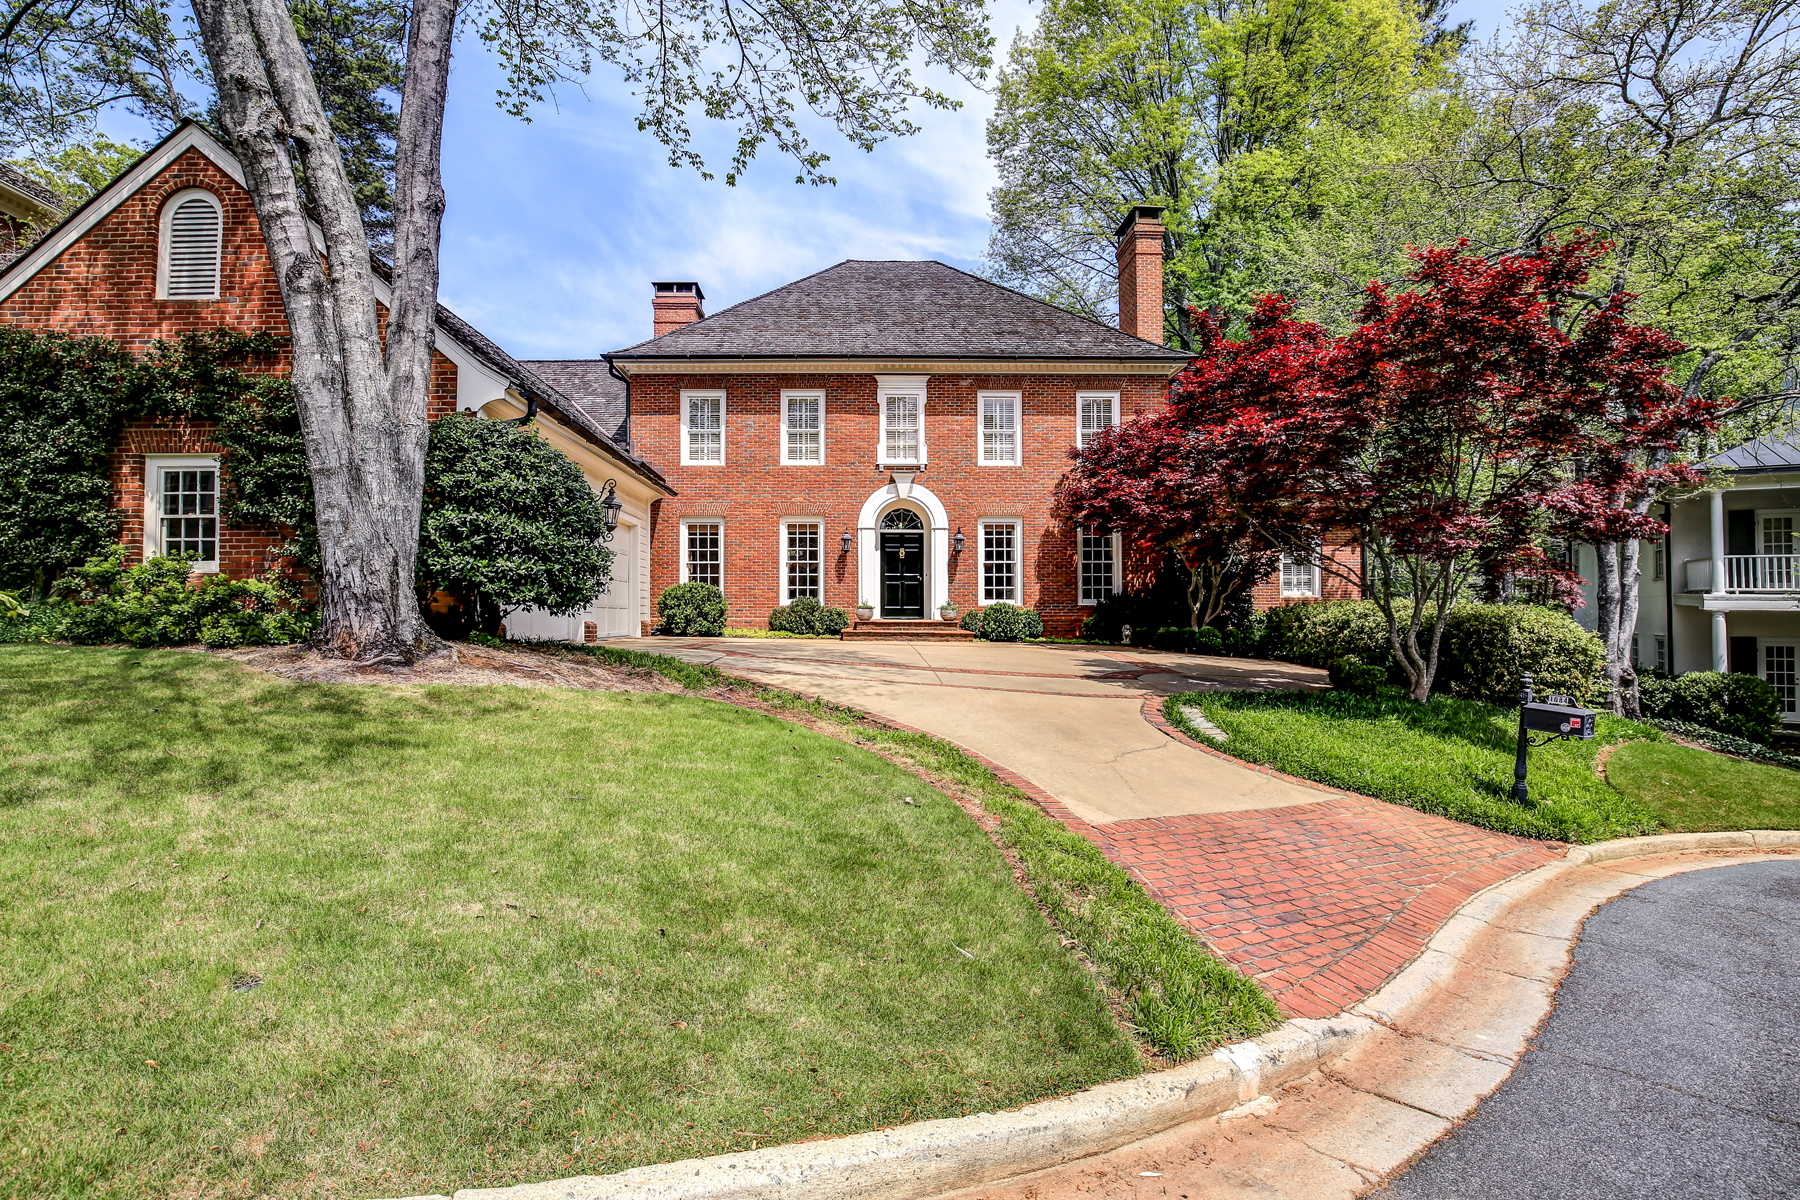 Single Family Home for Sale at Historic Brookhaven Home On Private Cul-de-sac 1084 Brookhaven Square NE Brookhaven, Atlanta, Georgia, 30319 United States